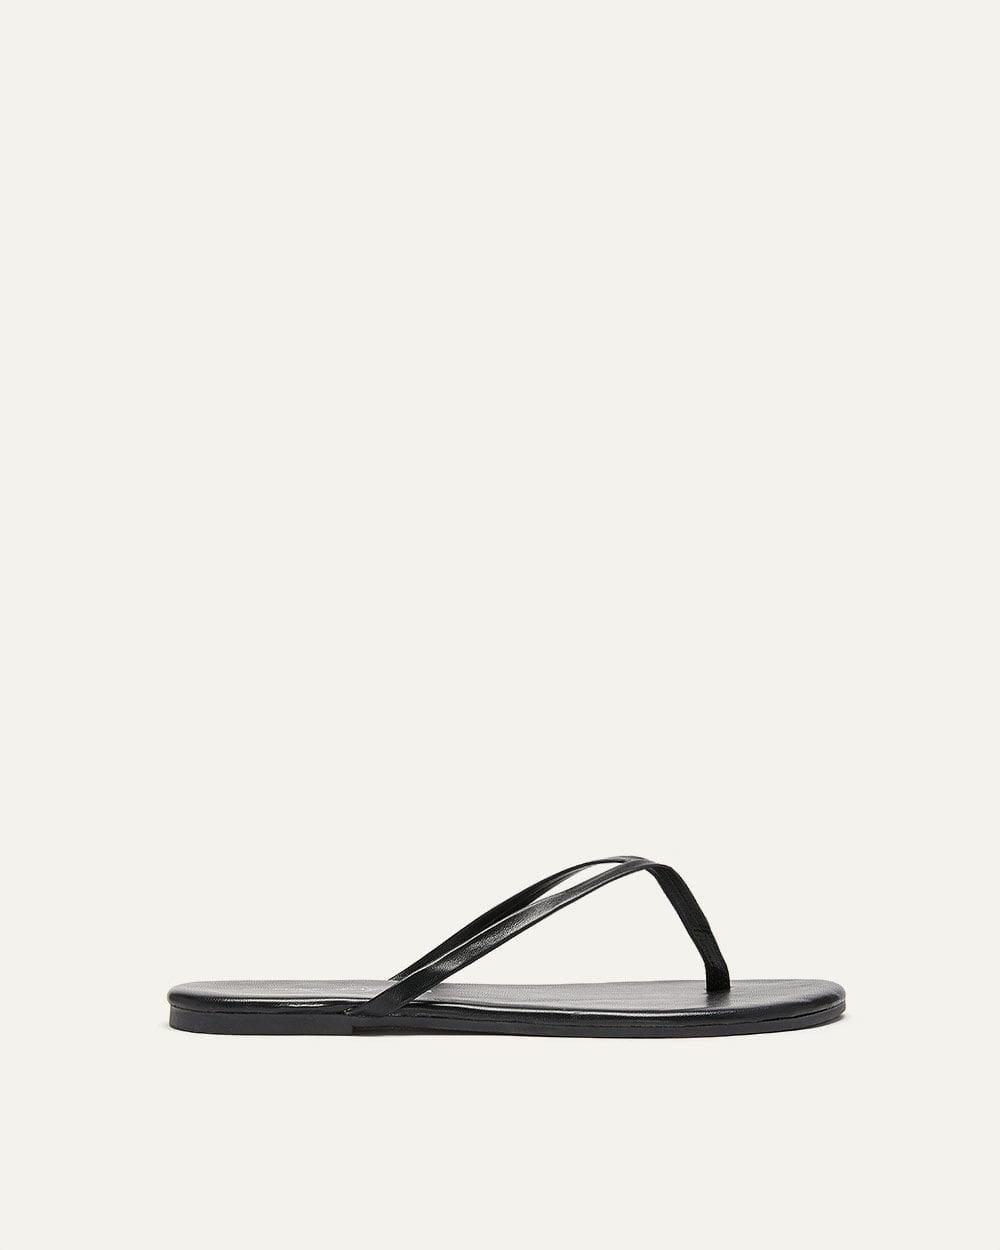 e18abc30f Lyst - Addition Elle Wide Flip-flop Sandals in Black